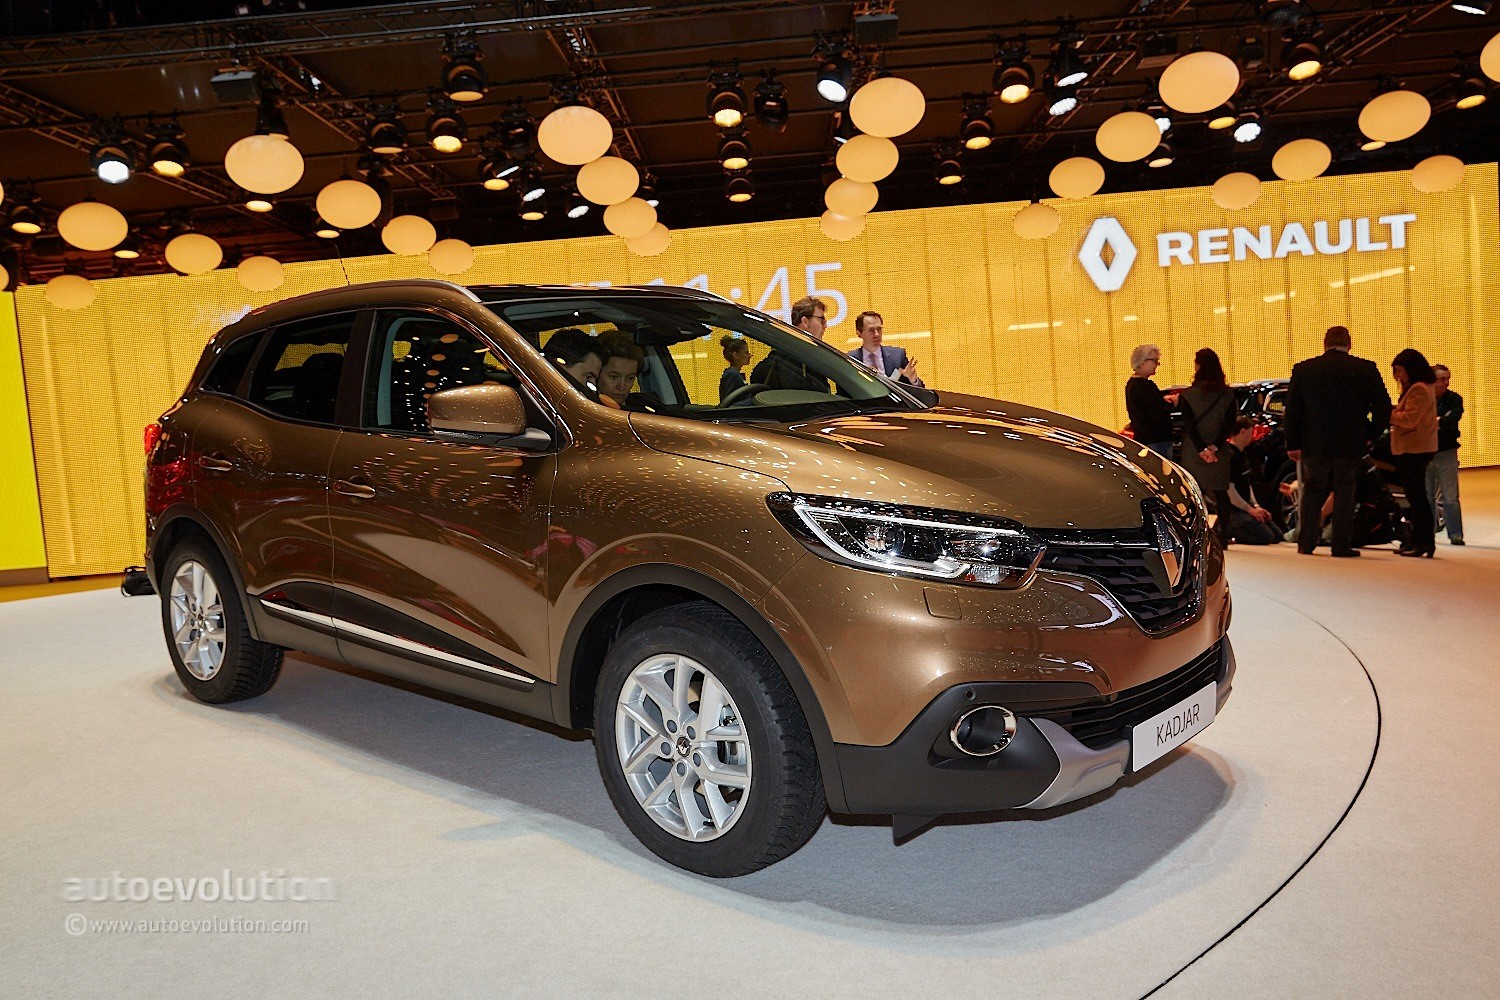 renault kadjar crossover shows disappointing interior at geneva 2015 video live photos. Black Bedroom Furniture Sets. Home Design Ideas